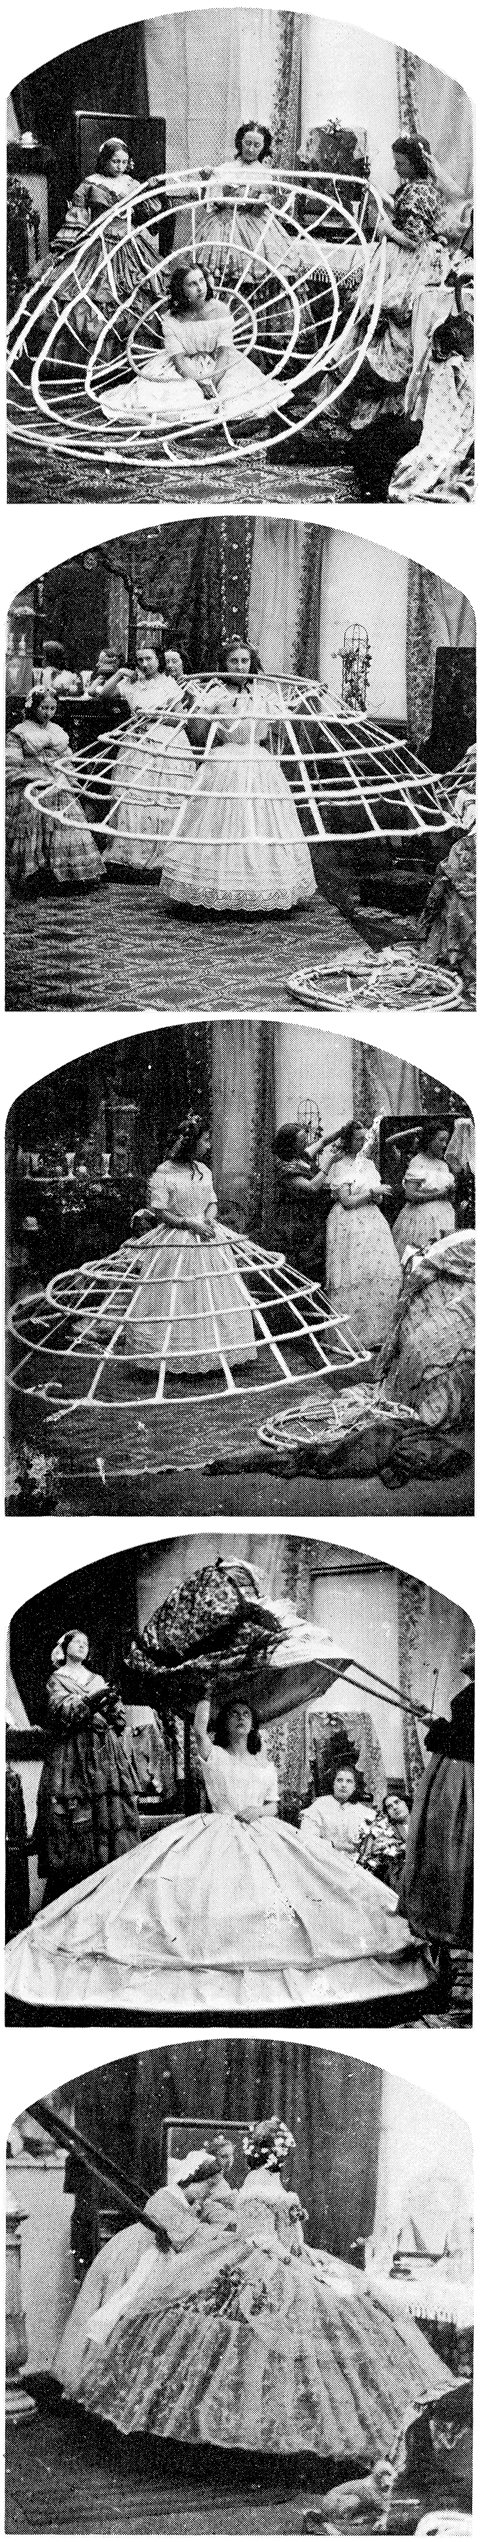 http://upload.wikimedia.org/wikipedia/commons/a/a7/Crinoline-joke-staged-photo-sequence-ca1860.jpg